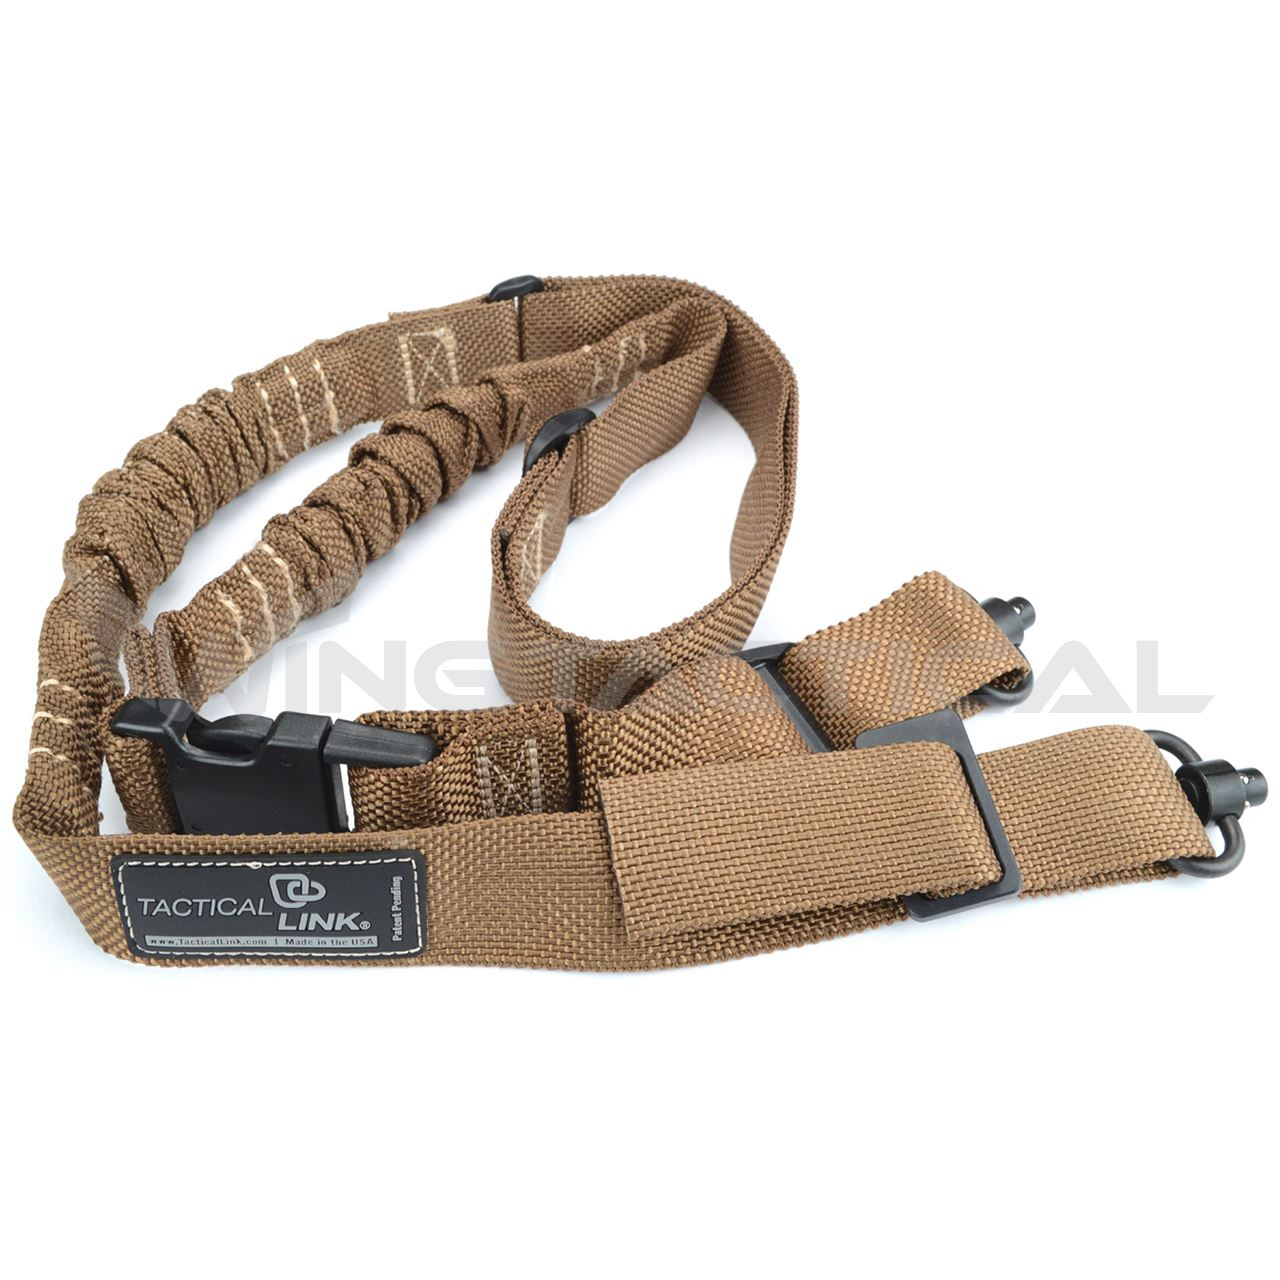 Tactical Link Convertible Quick Detach Bungee Sling